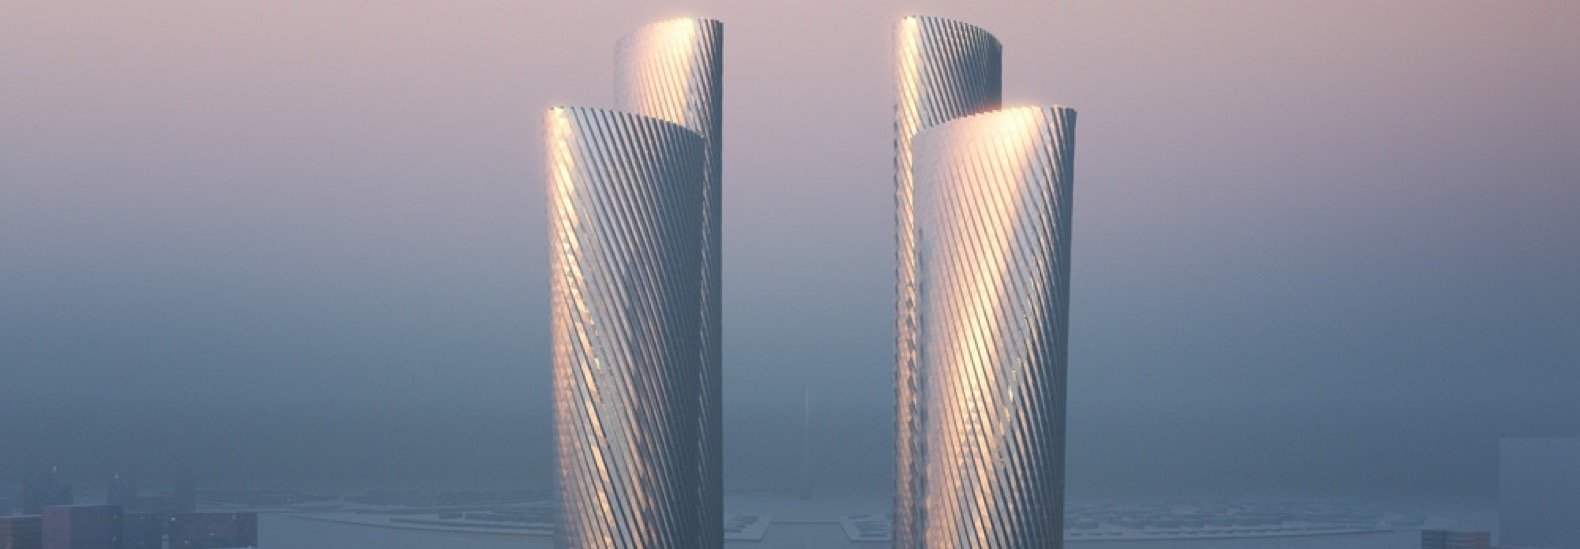 Foster + Partners designs climate-responsive Lusail Towers in Qatar